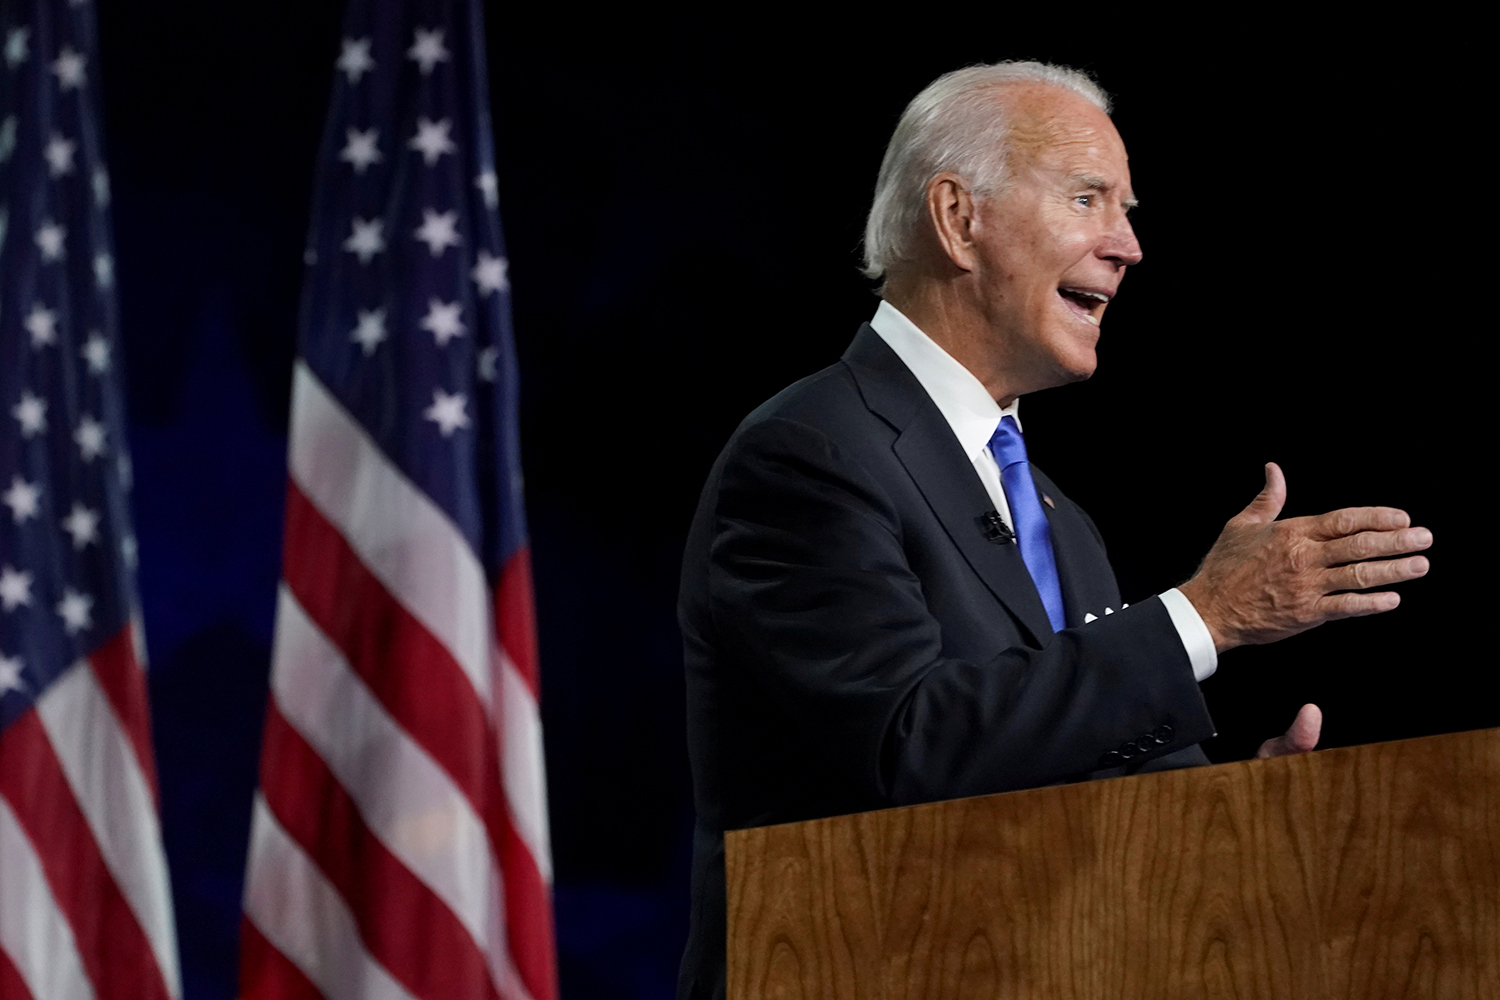 Biden's Foreign Policy With Russia By Yasmeen Aftab Ali